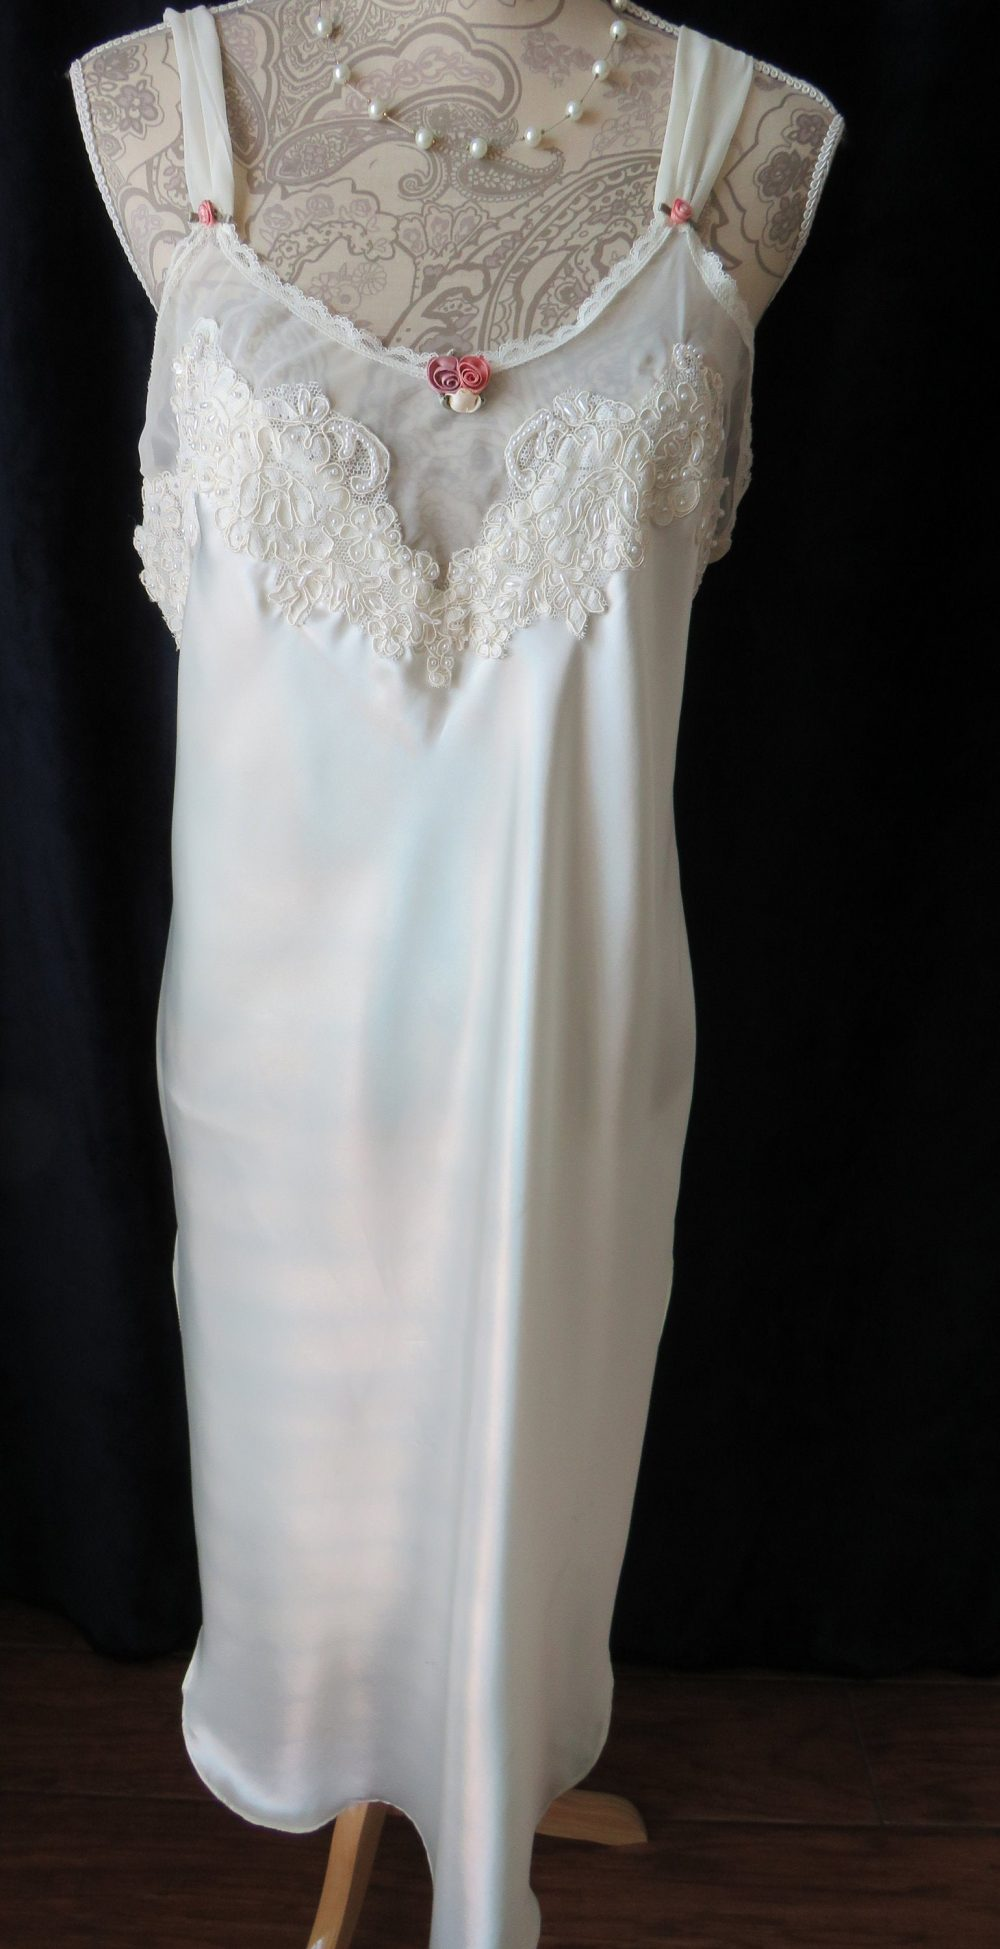 1980S Nightgown By California Dynasty - Size Medium To Large Long White Lace Seed Pearls Roses Womens Glamorous Nightie Costume